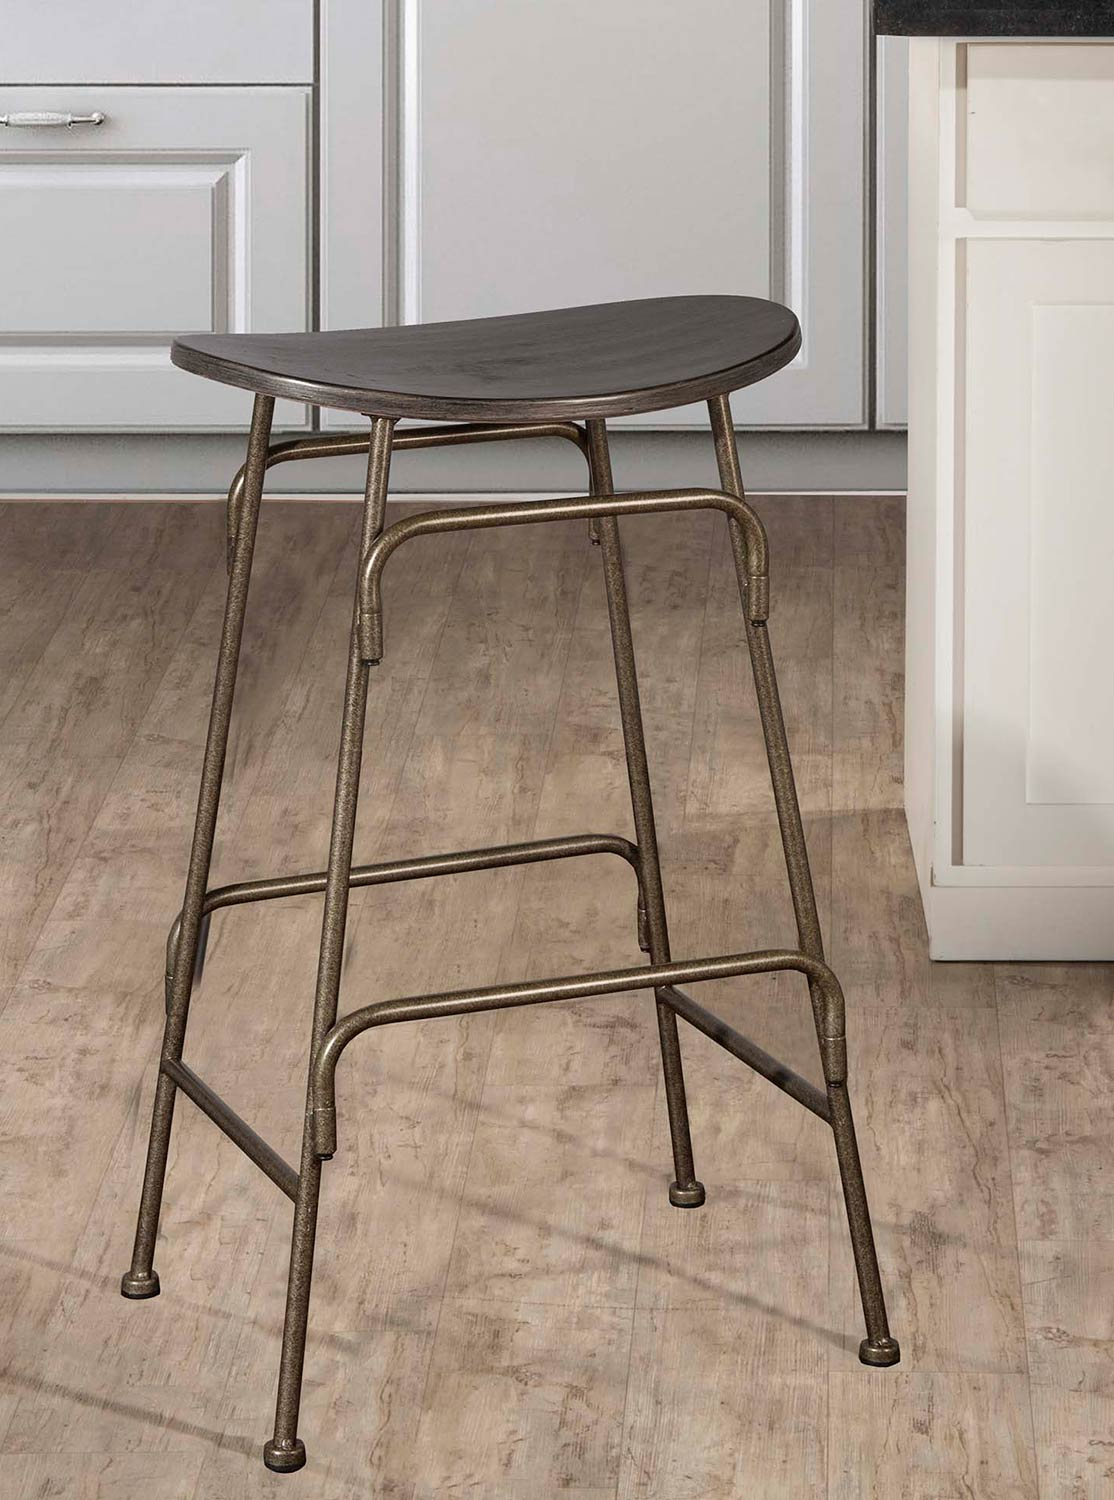 Hillsdale Mitchell Non-Swivel Backless Counter Stool - Black Wood/Bronze Metal